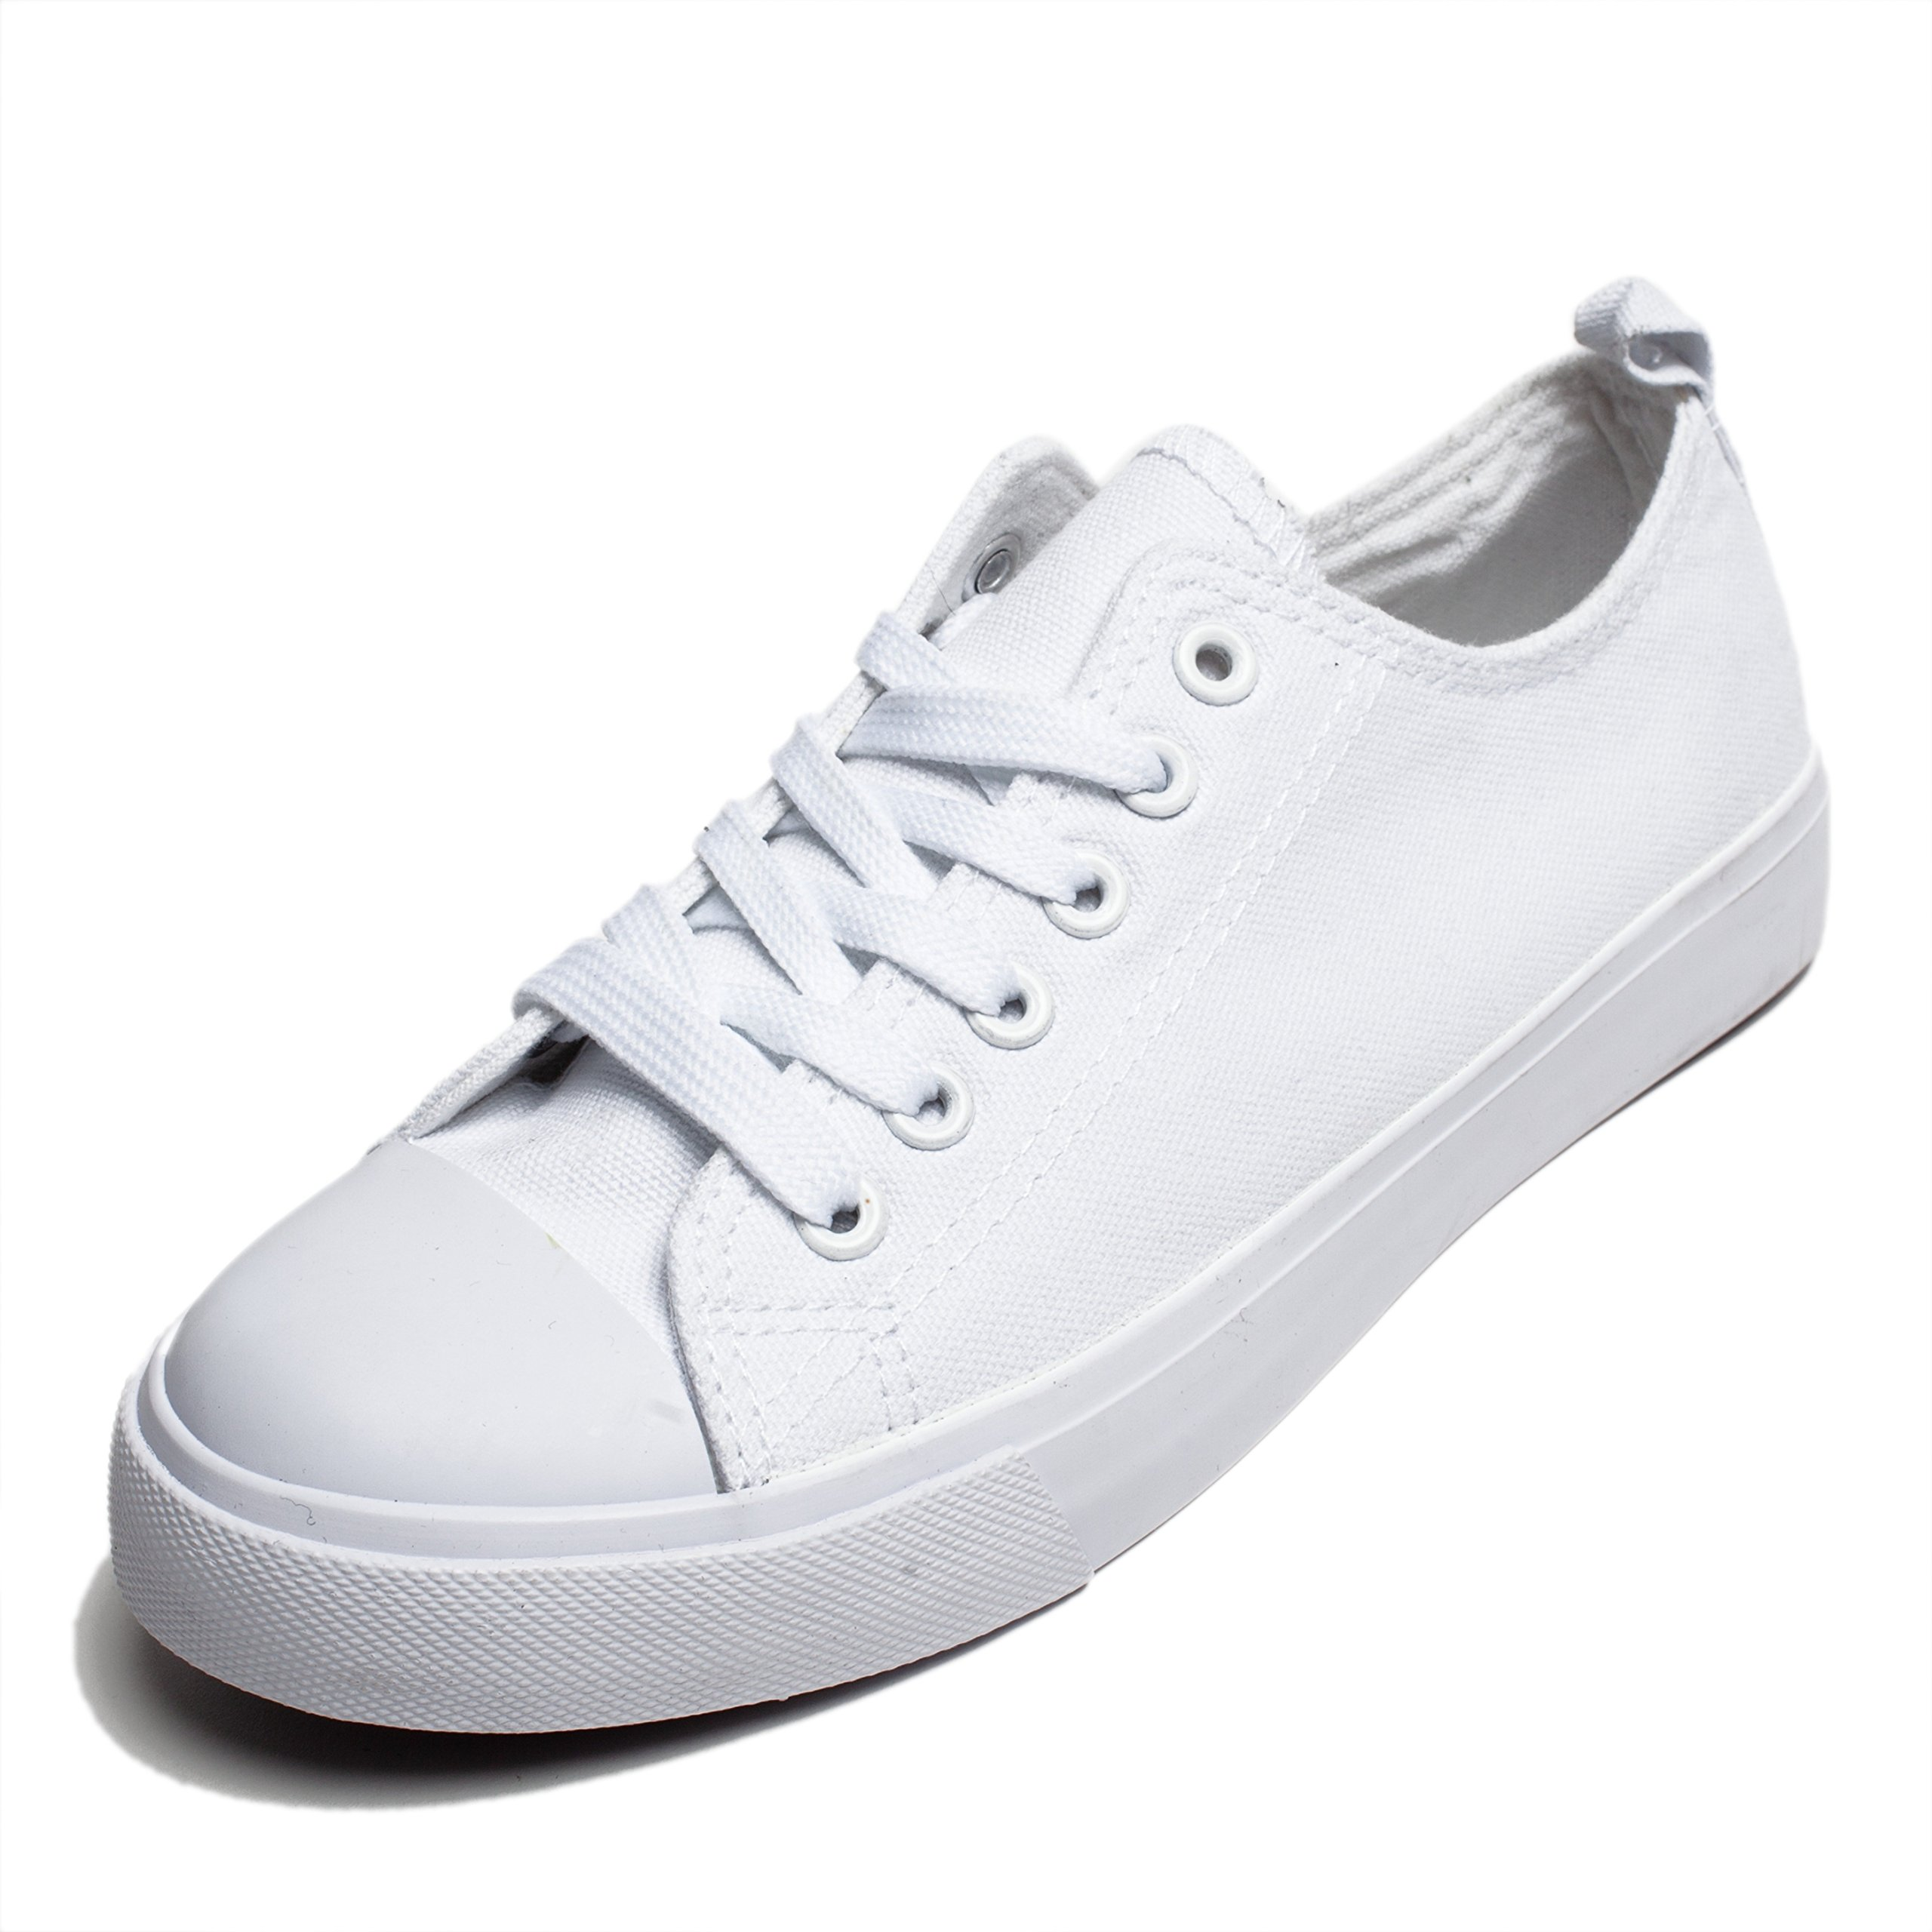 Women Canvas Sneakers, Low Cut Low Top Lace up Flat Fashion Sneaker, Casual Cap Toe Shoes for Girls, Trainers Classic (8, White)